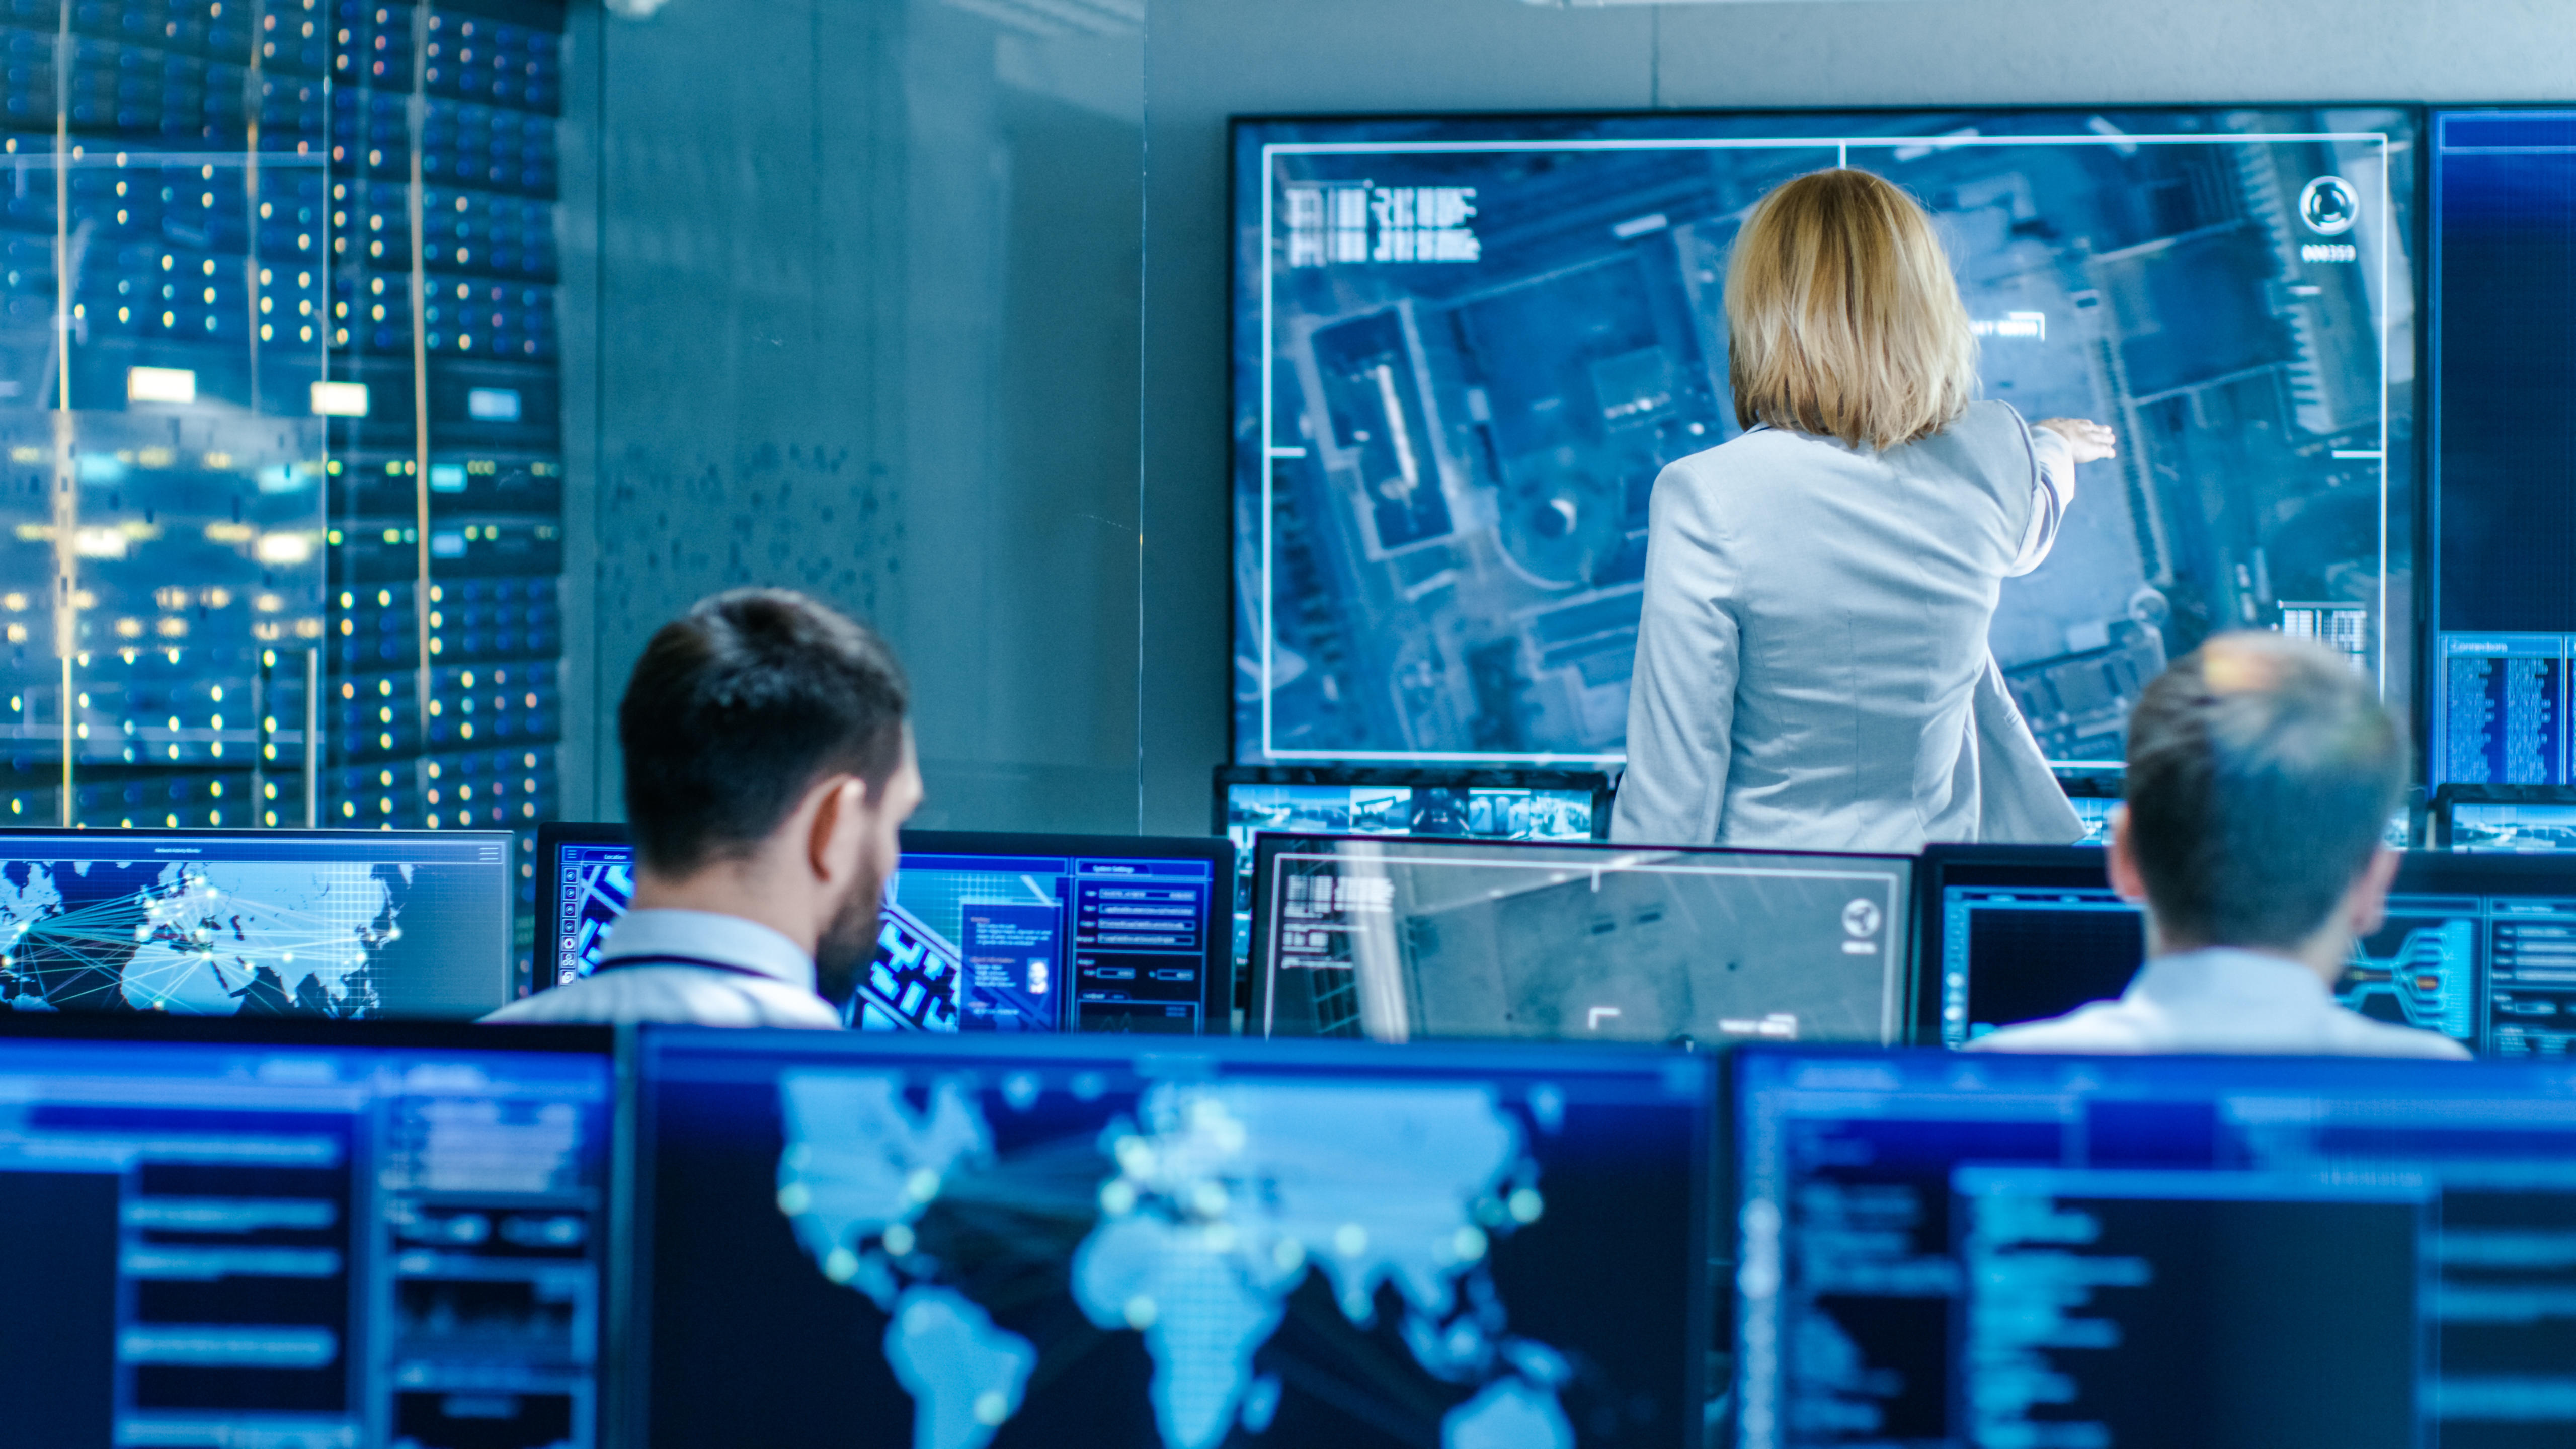 Employee privacy at stake as surveillance technology evolves